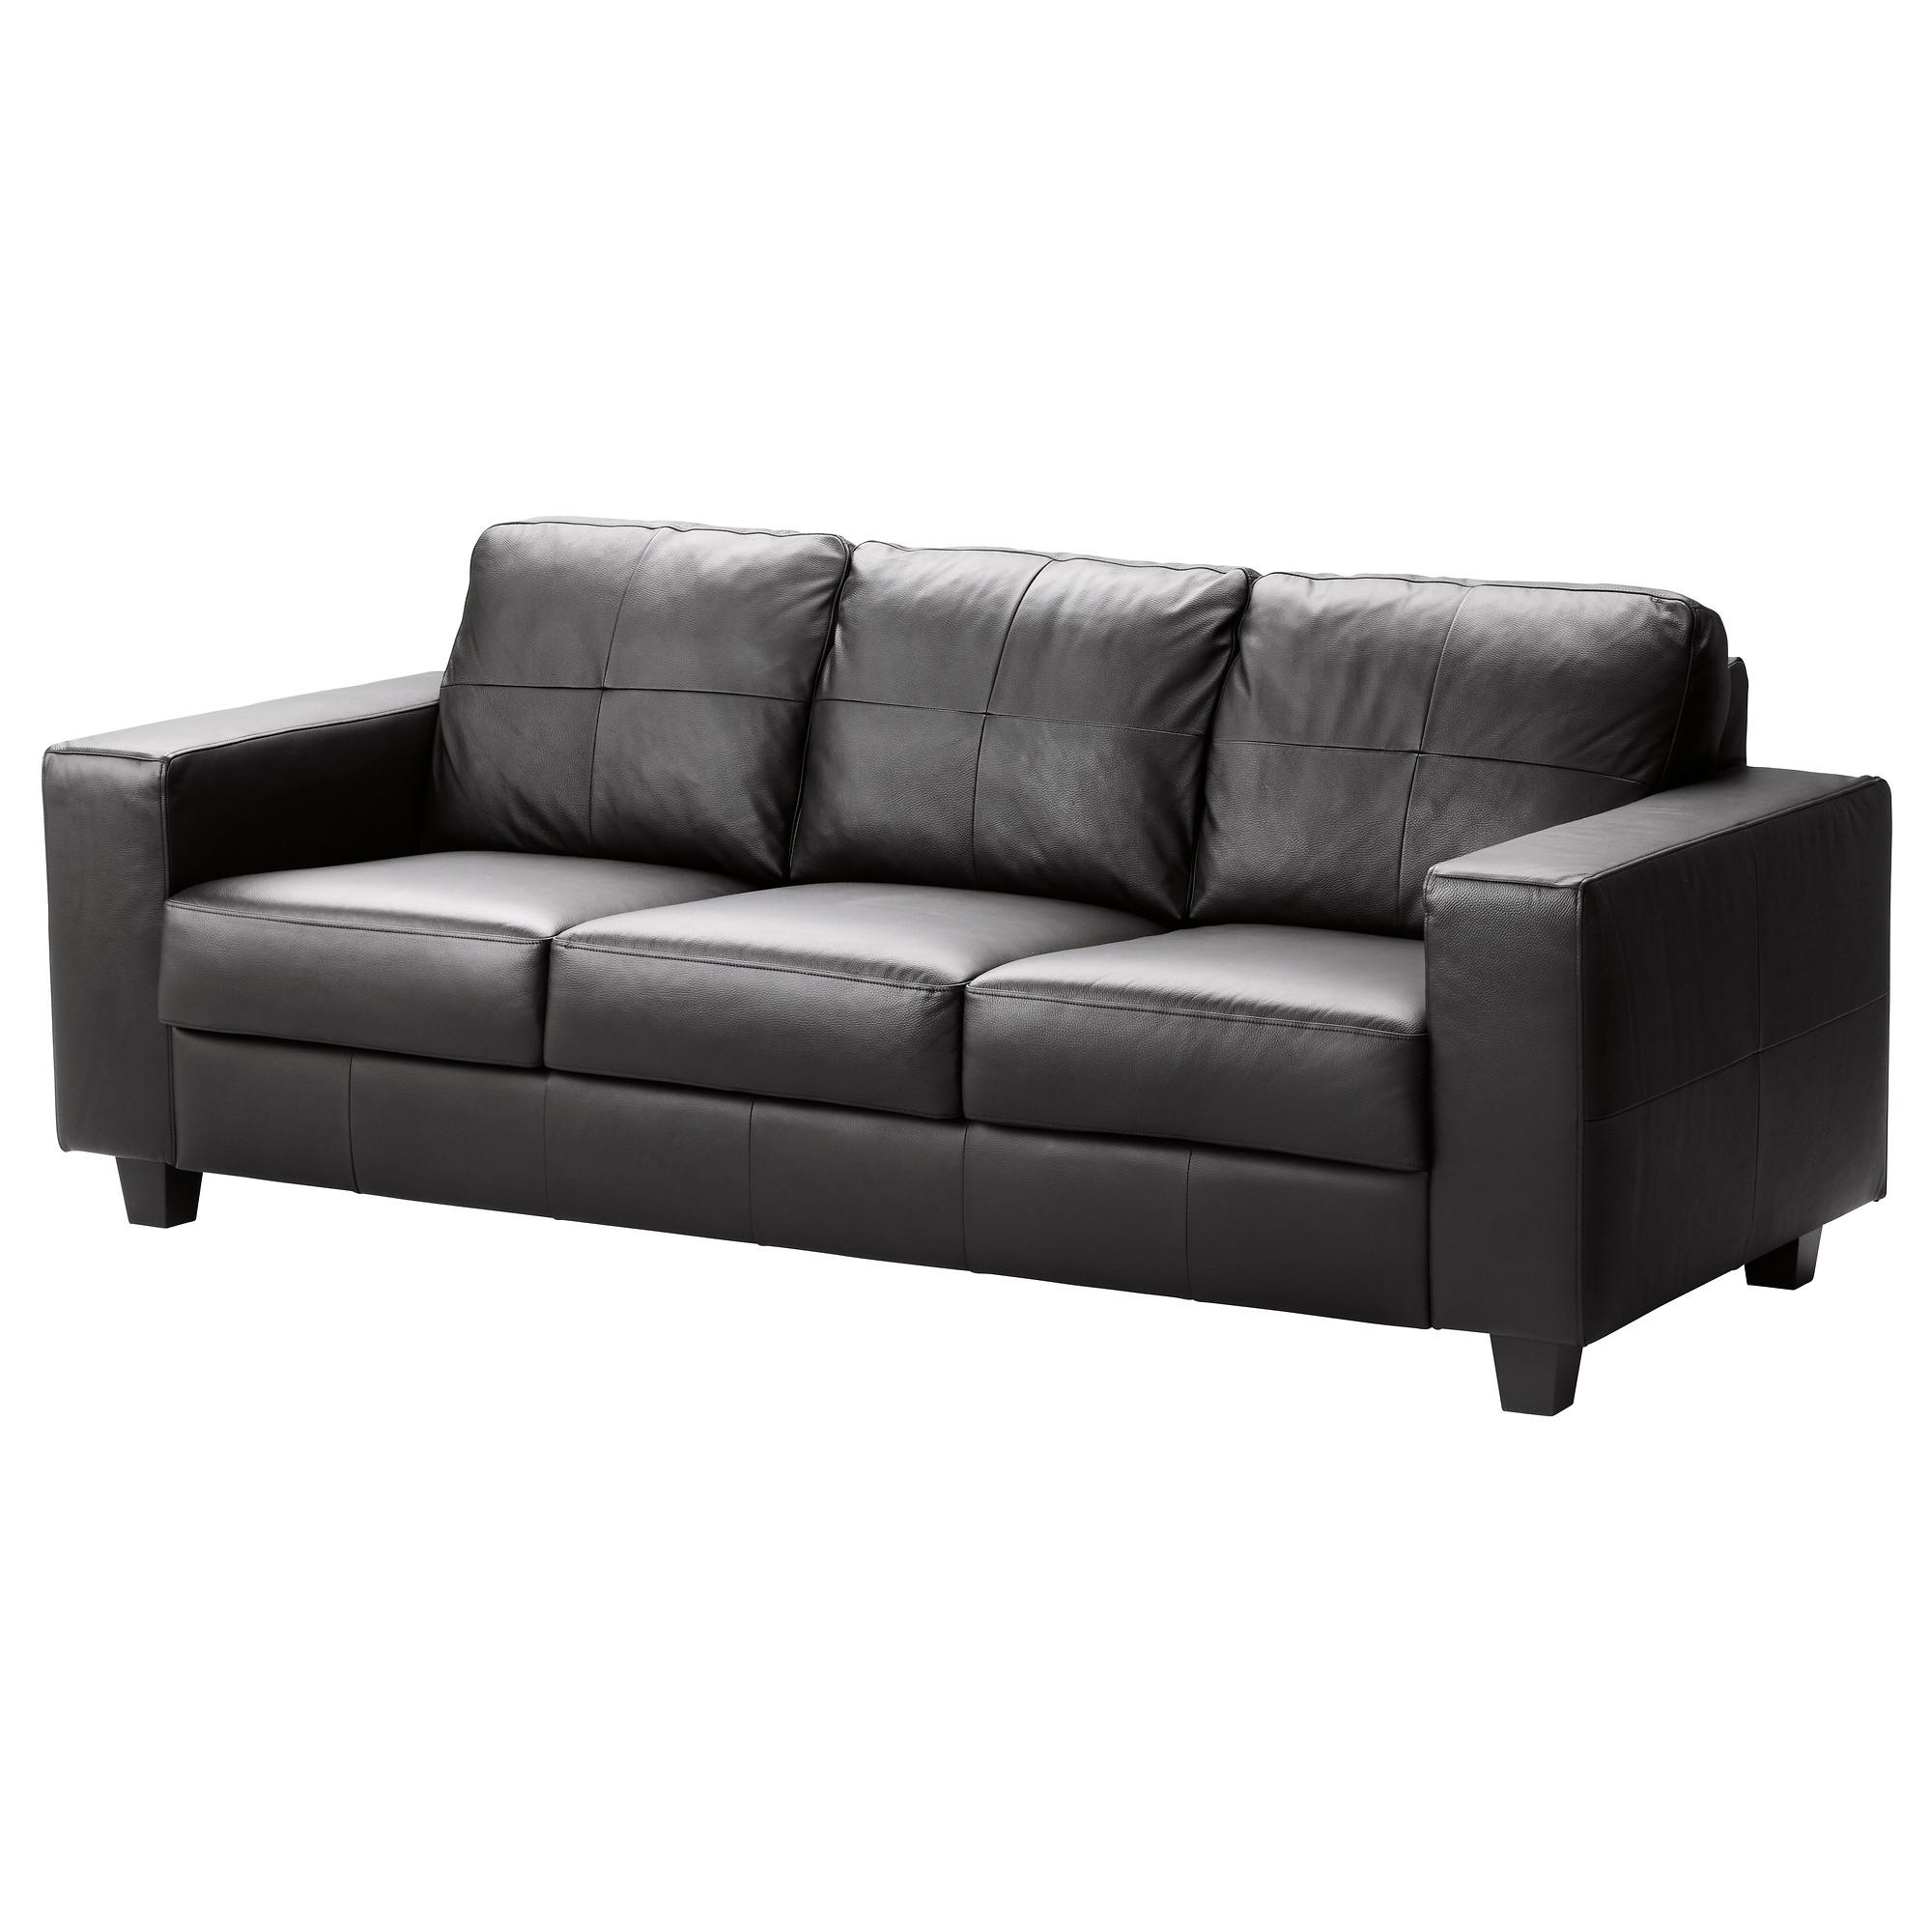 Leather/faux Leather Sofas – Ikea Within Leather And Material Sofas (Image 14 of 21)